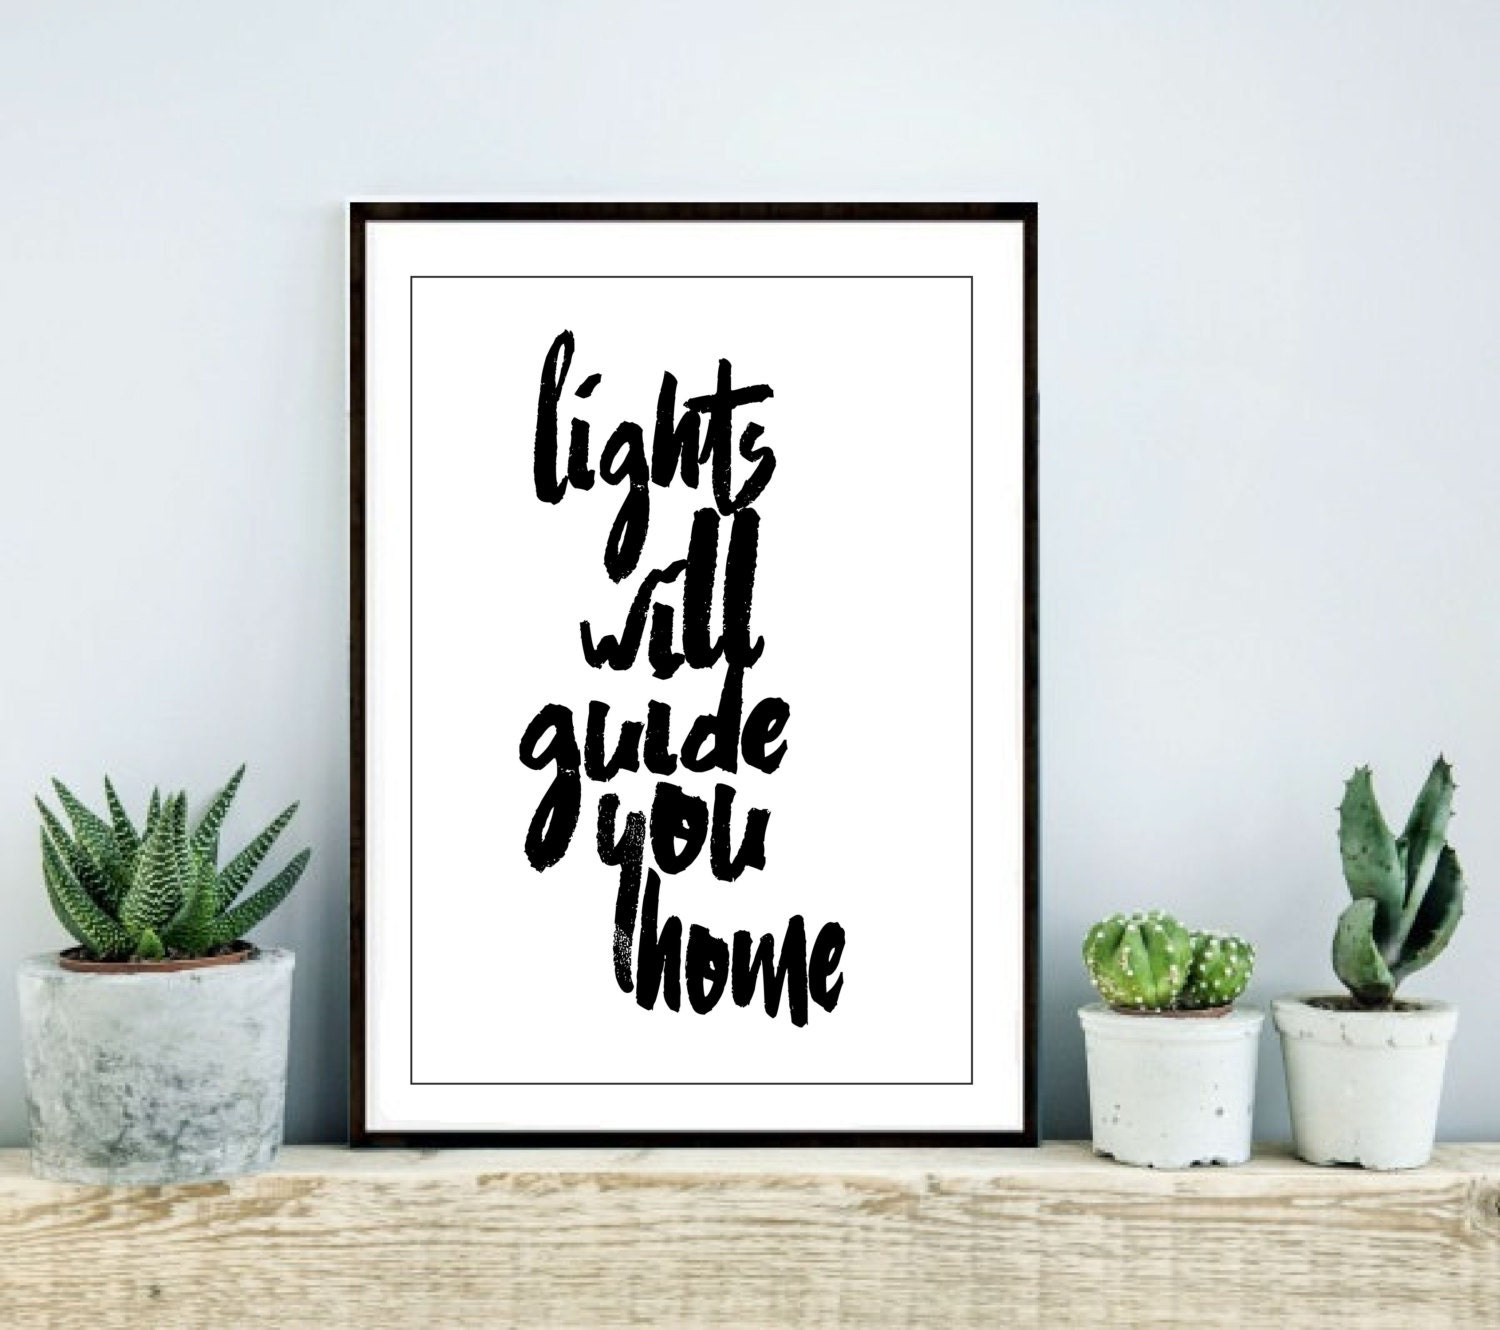 Dorable Coldplay Light Will Guide You Home Image Collection - Home ...